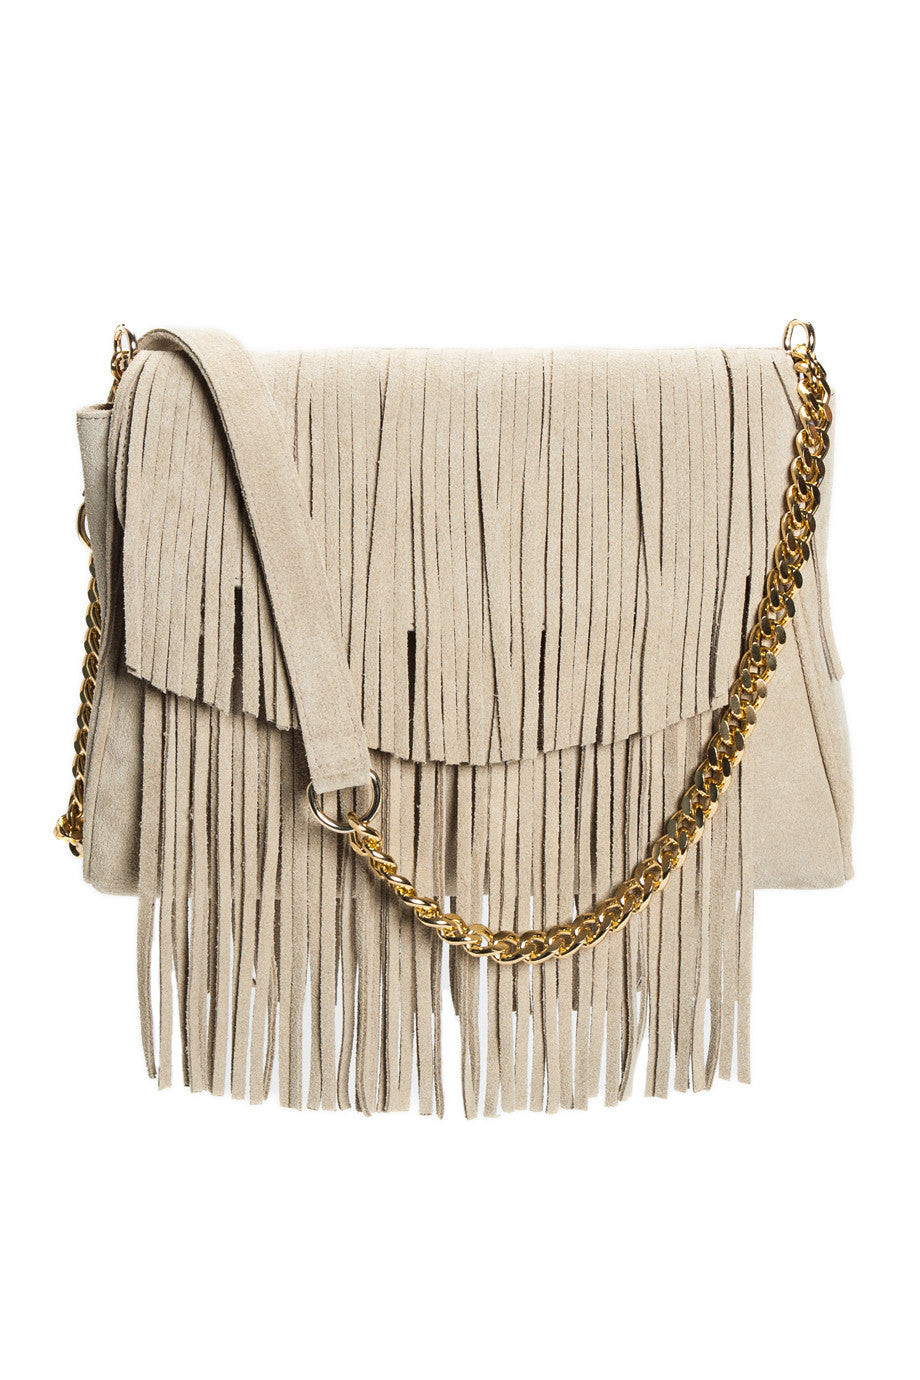 The 'June Moss' Beige Suede Fringe Handbag | Detail View | Mel Boteri